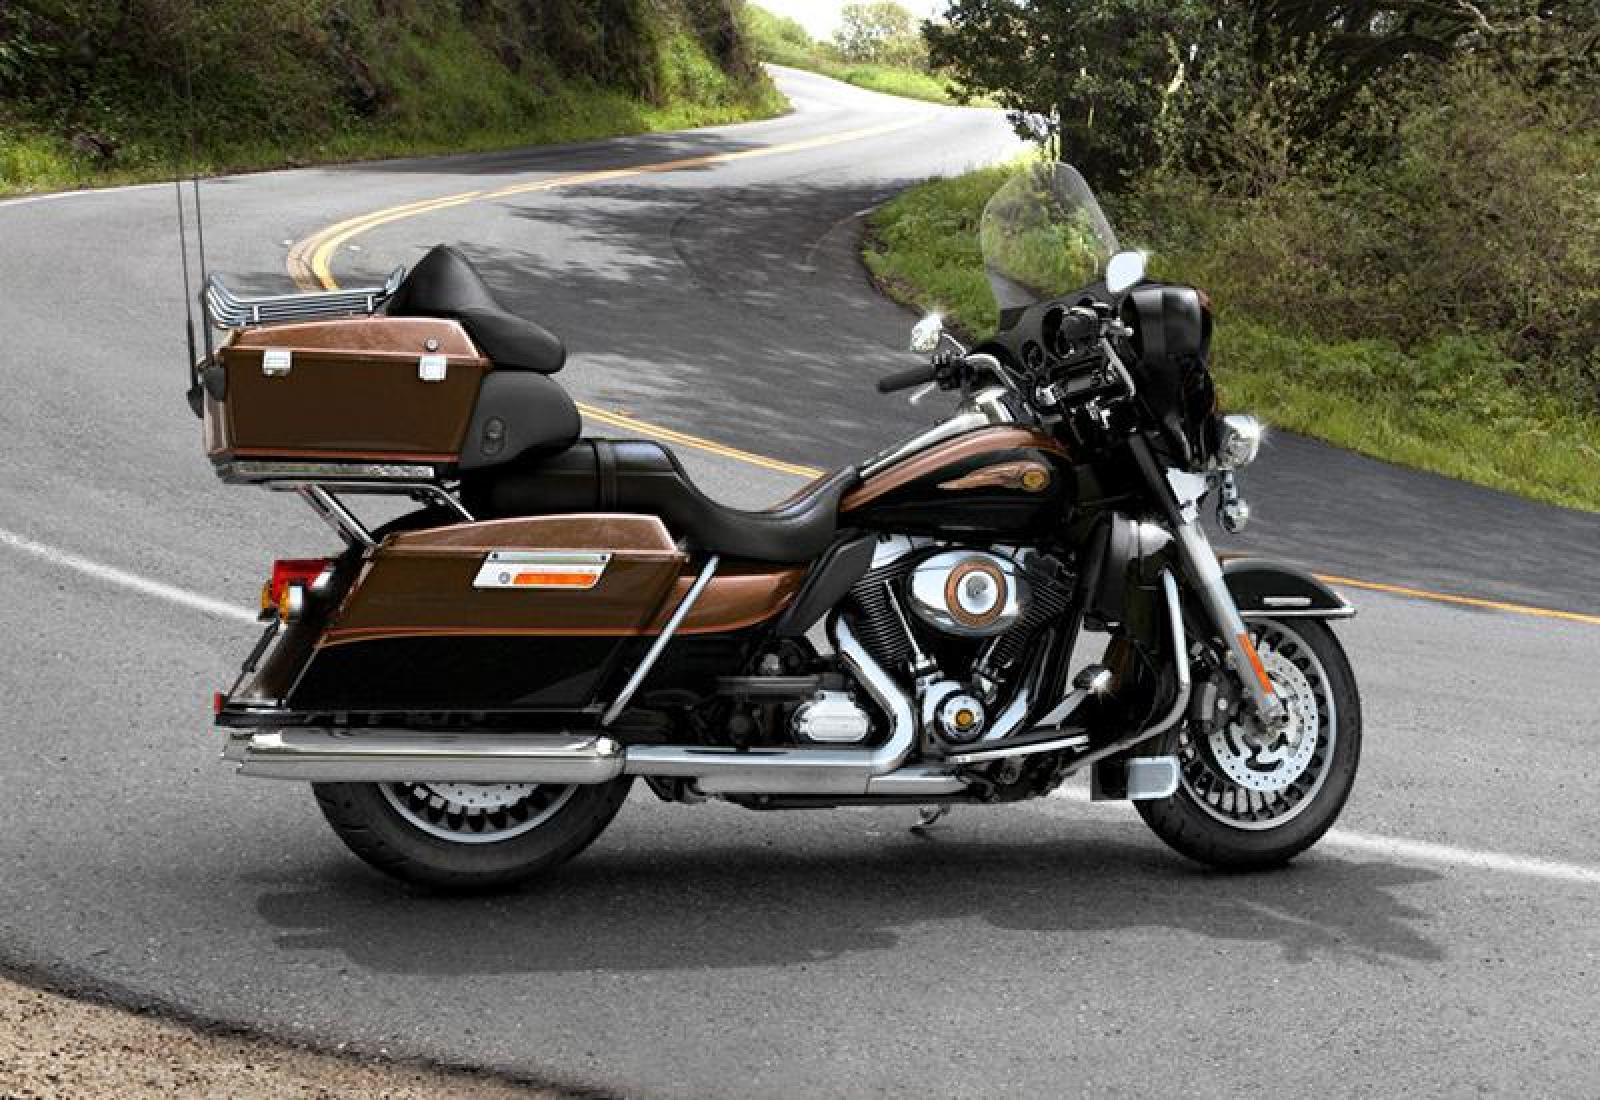 harley davidson harley davidson cvo ultra classic electra glide 110th anniversary moto. Black Bedroom Furniture Sets. Home Design Ideas